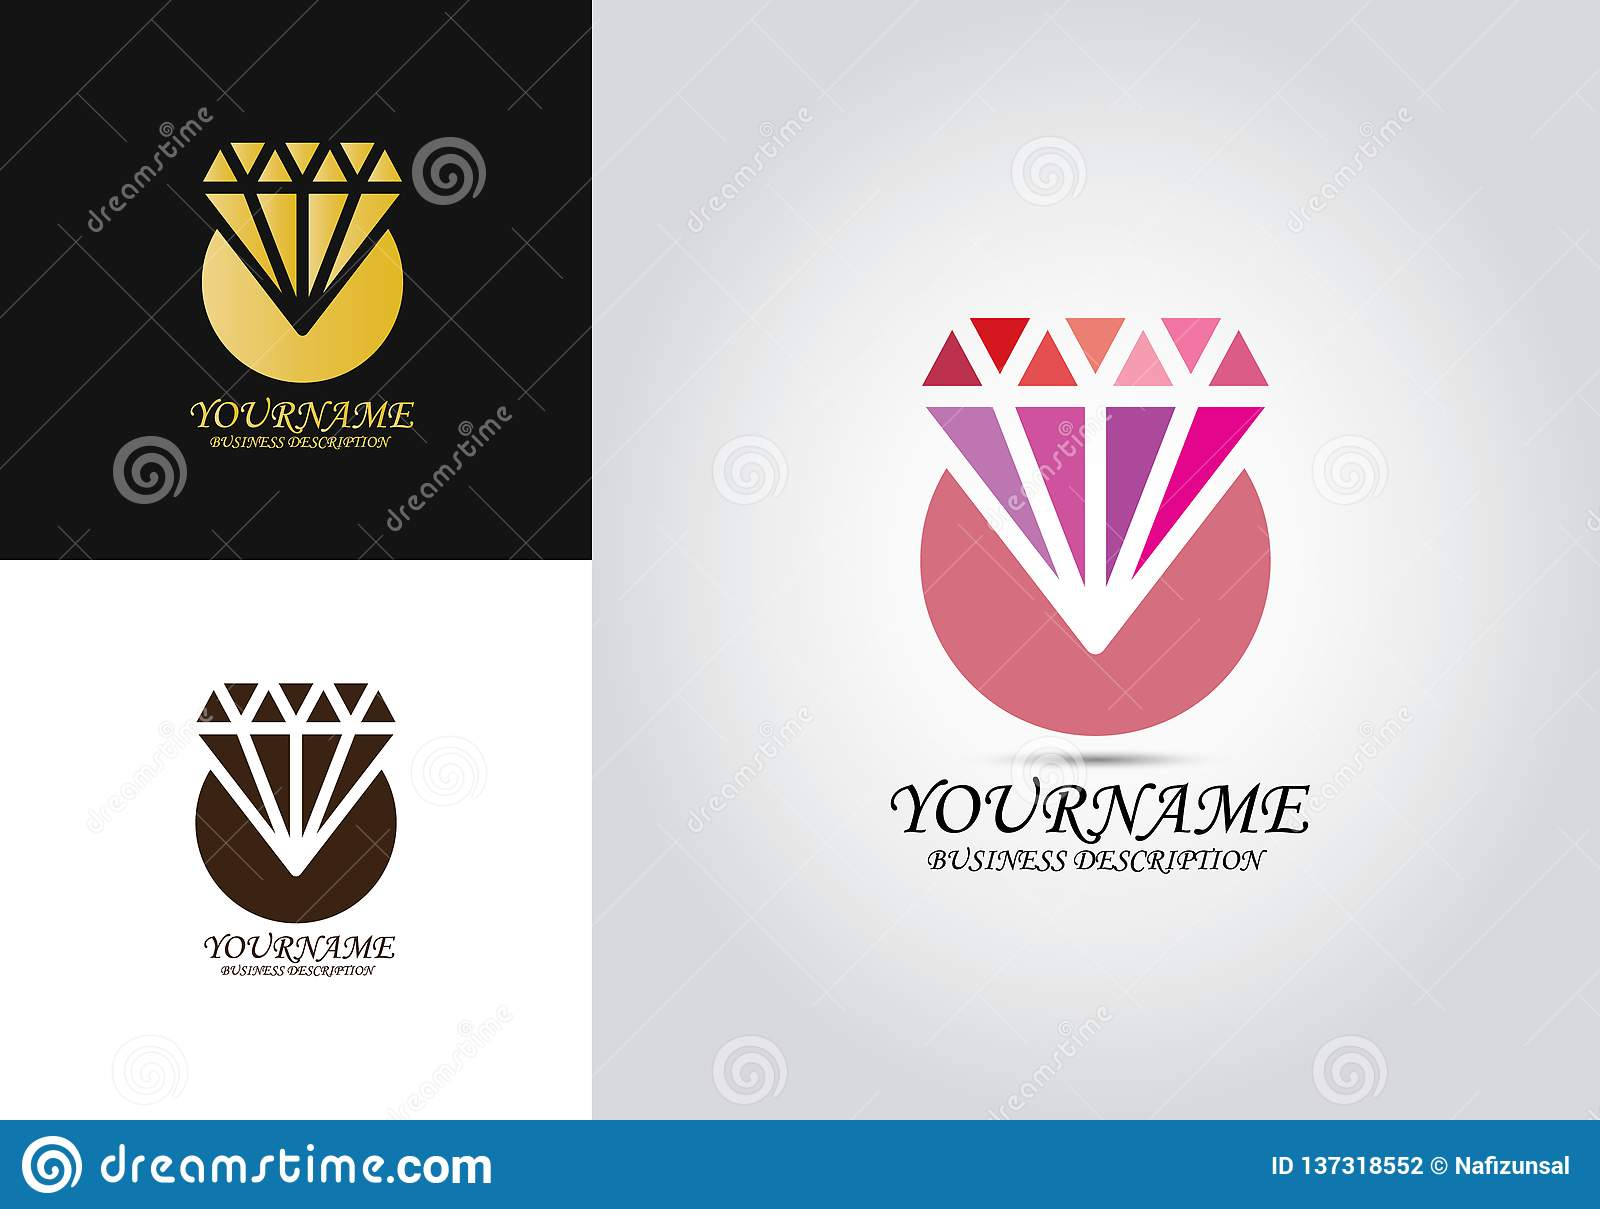 Diamond Template Design Logo